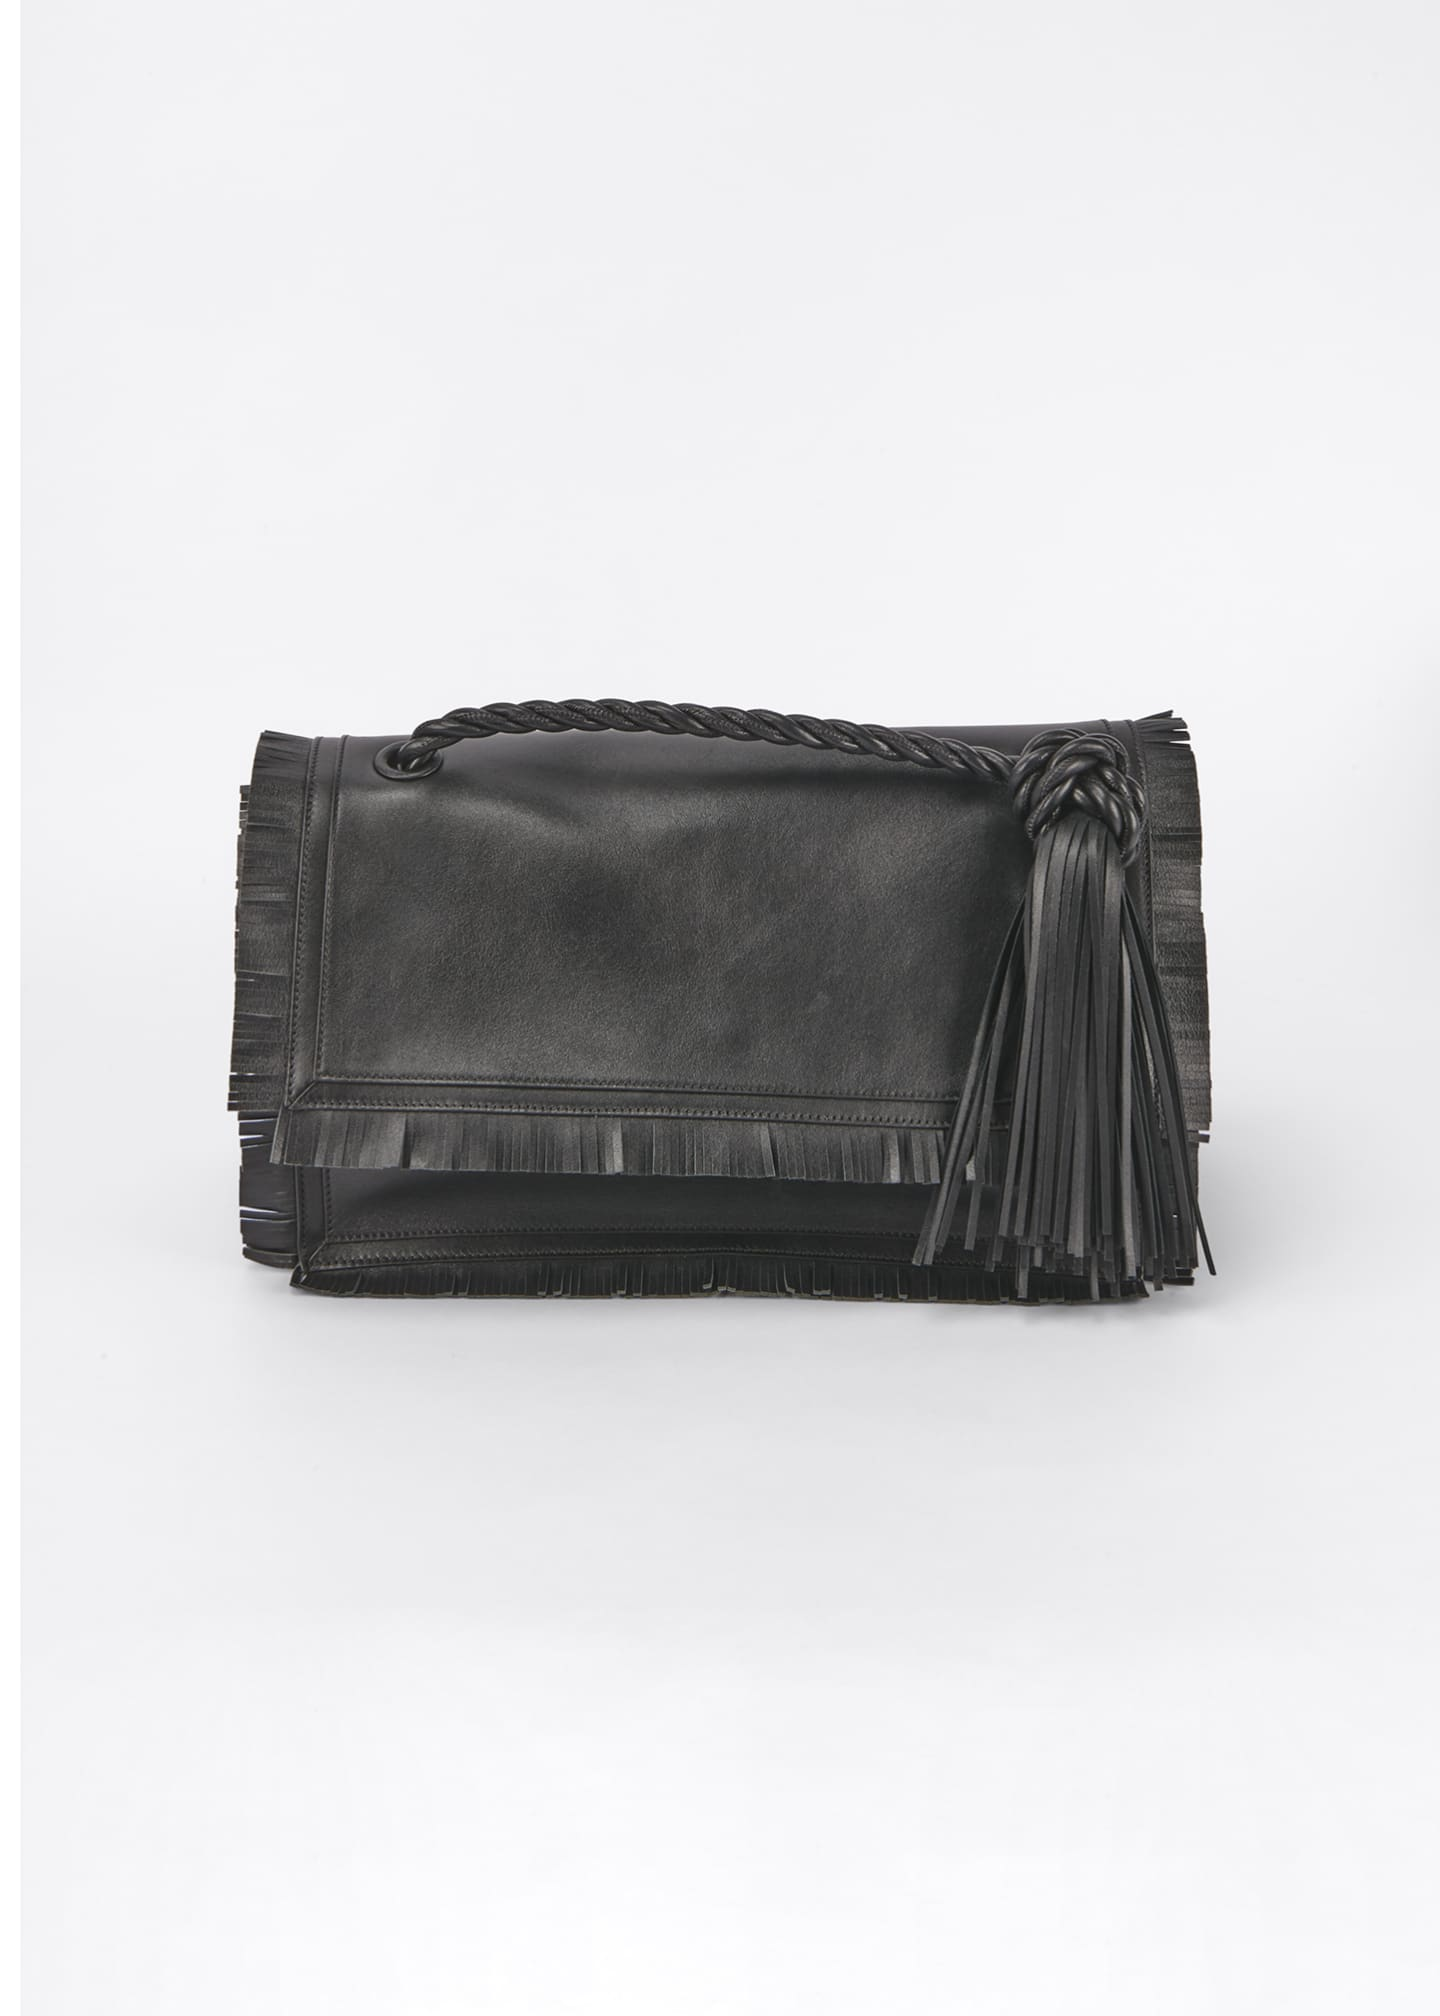 Image 1 of 5: The Rope Fringe Leather Clutch Bag